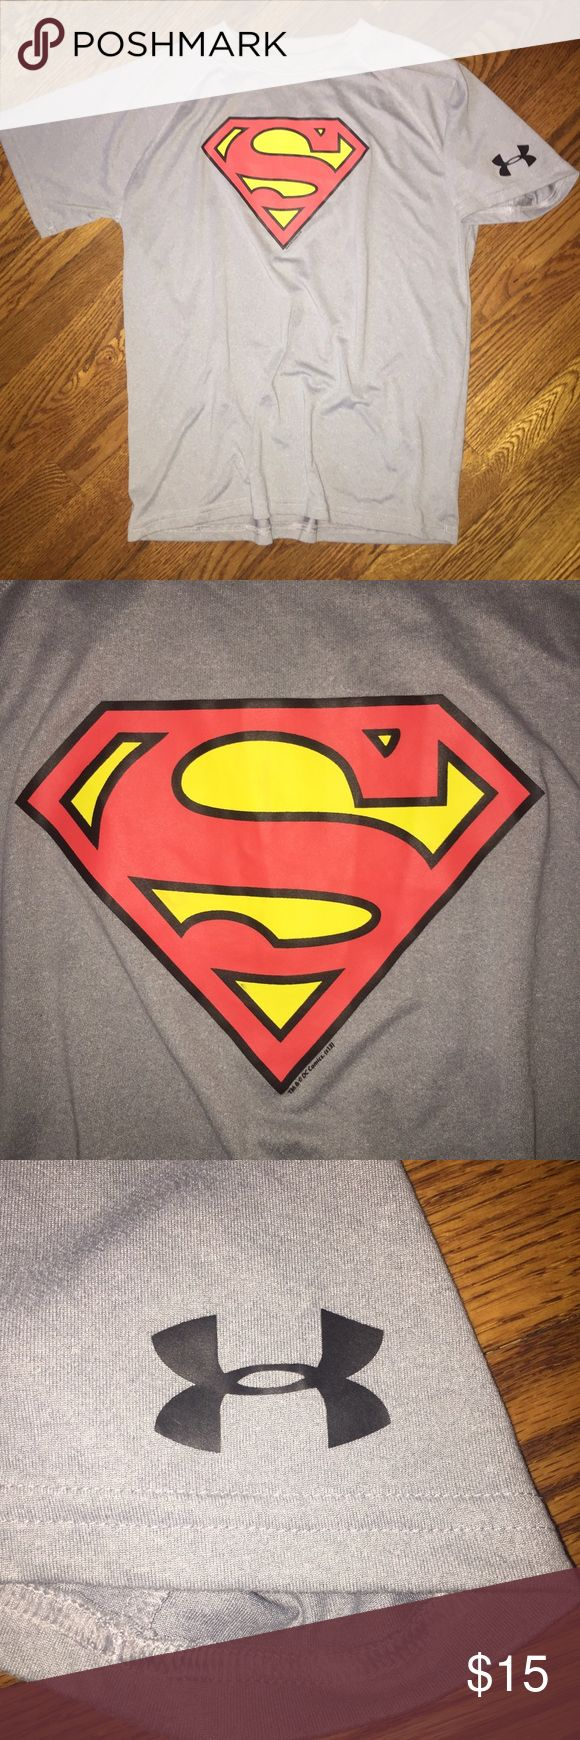 Boys' Under Armour Superman shirt...Size XL Boys' Under Armour Superman shirt...grey in color with Superman logo on front and Under Armour logo on sleeve...Size XL in excellent condition from a smoke free home! Under Armour Shirts & Tops Tees - Short Sleeve